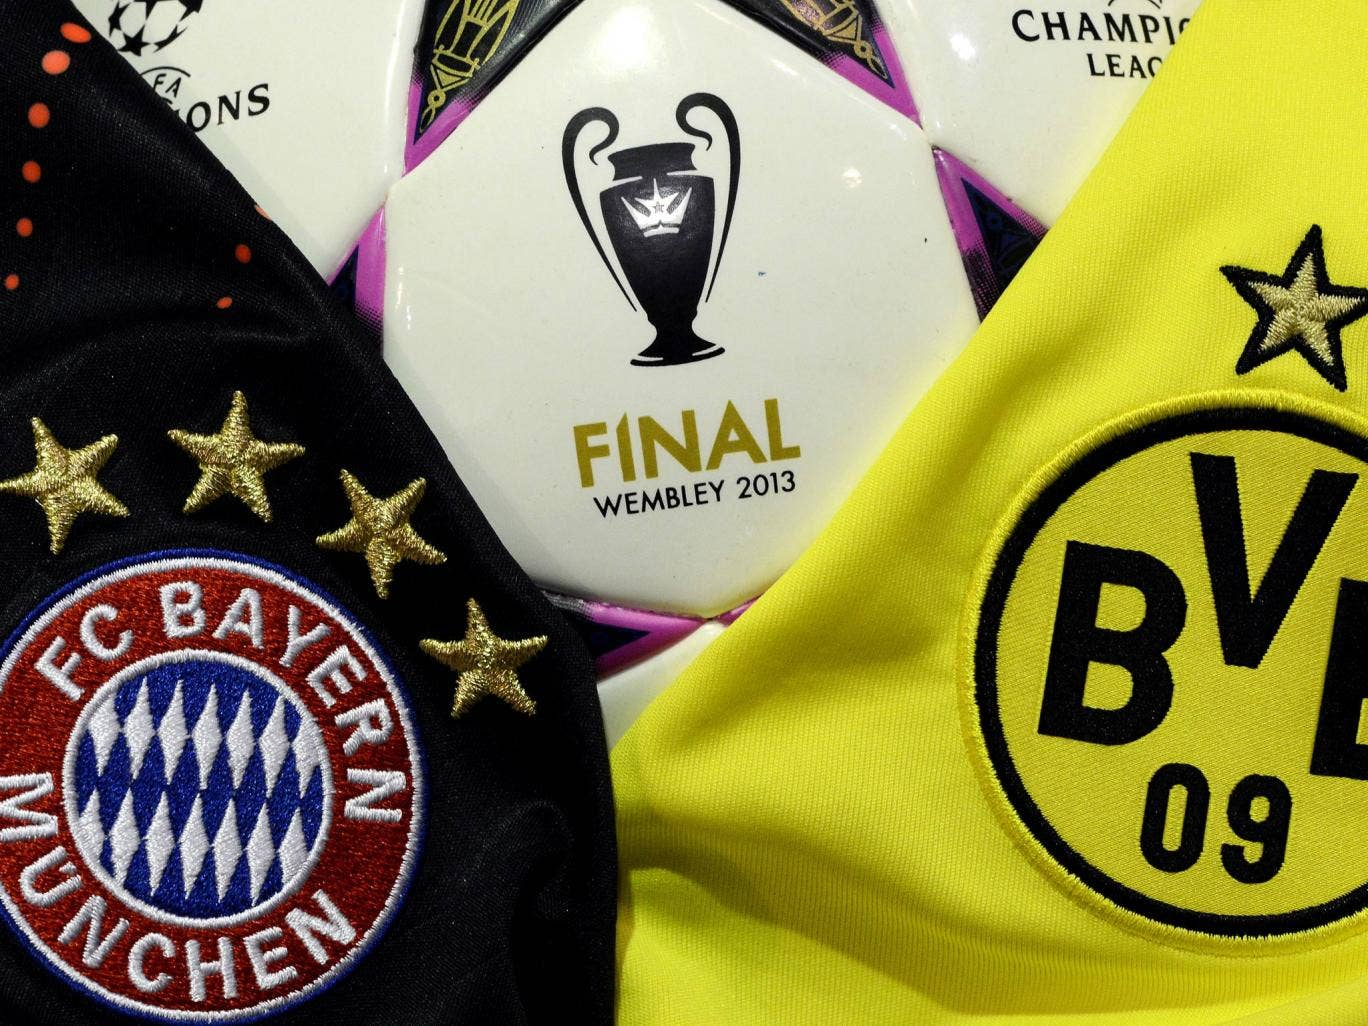 Bayern Munich and Borussia Dortmund will contest the Champions League final